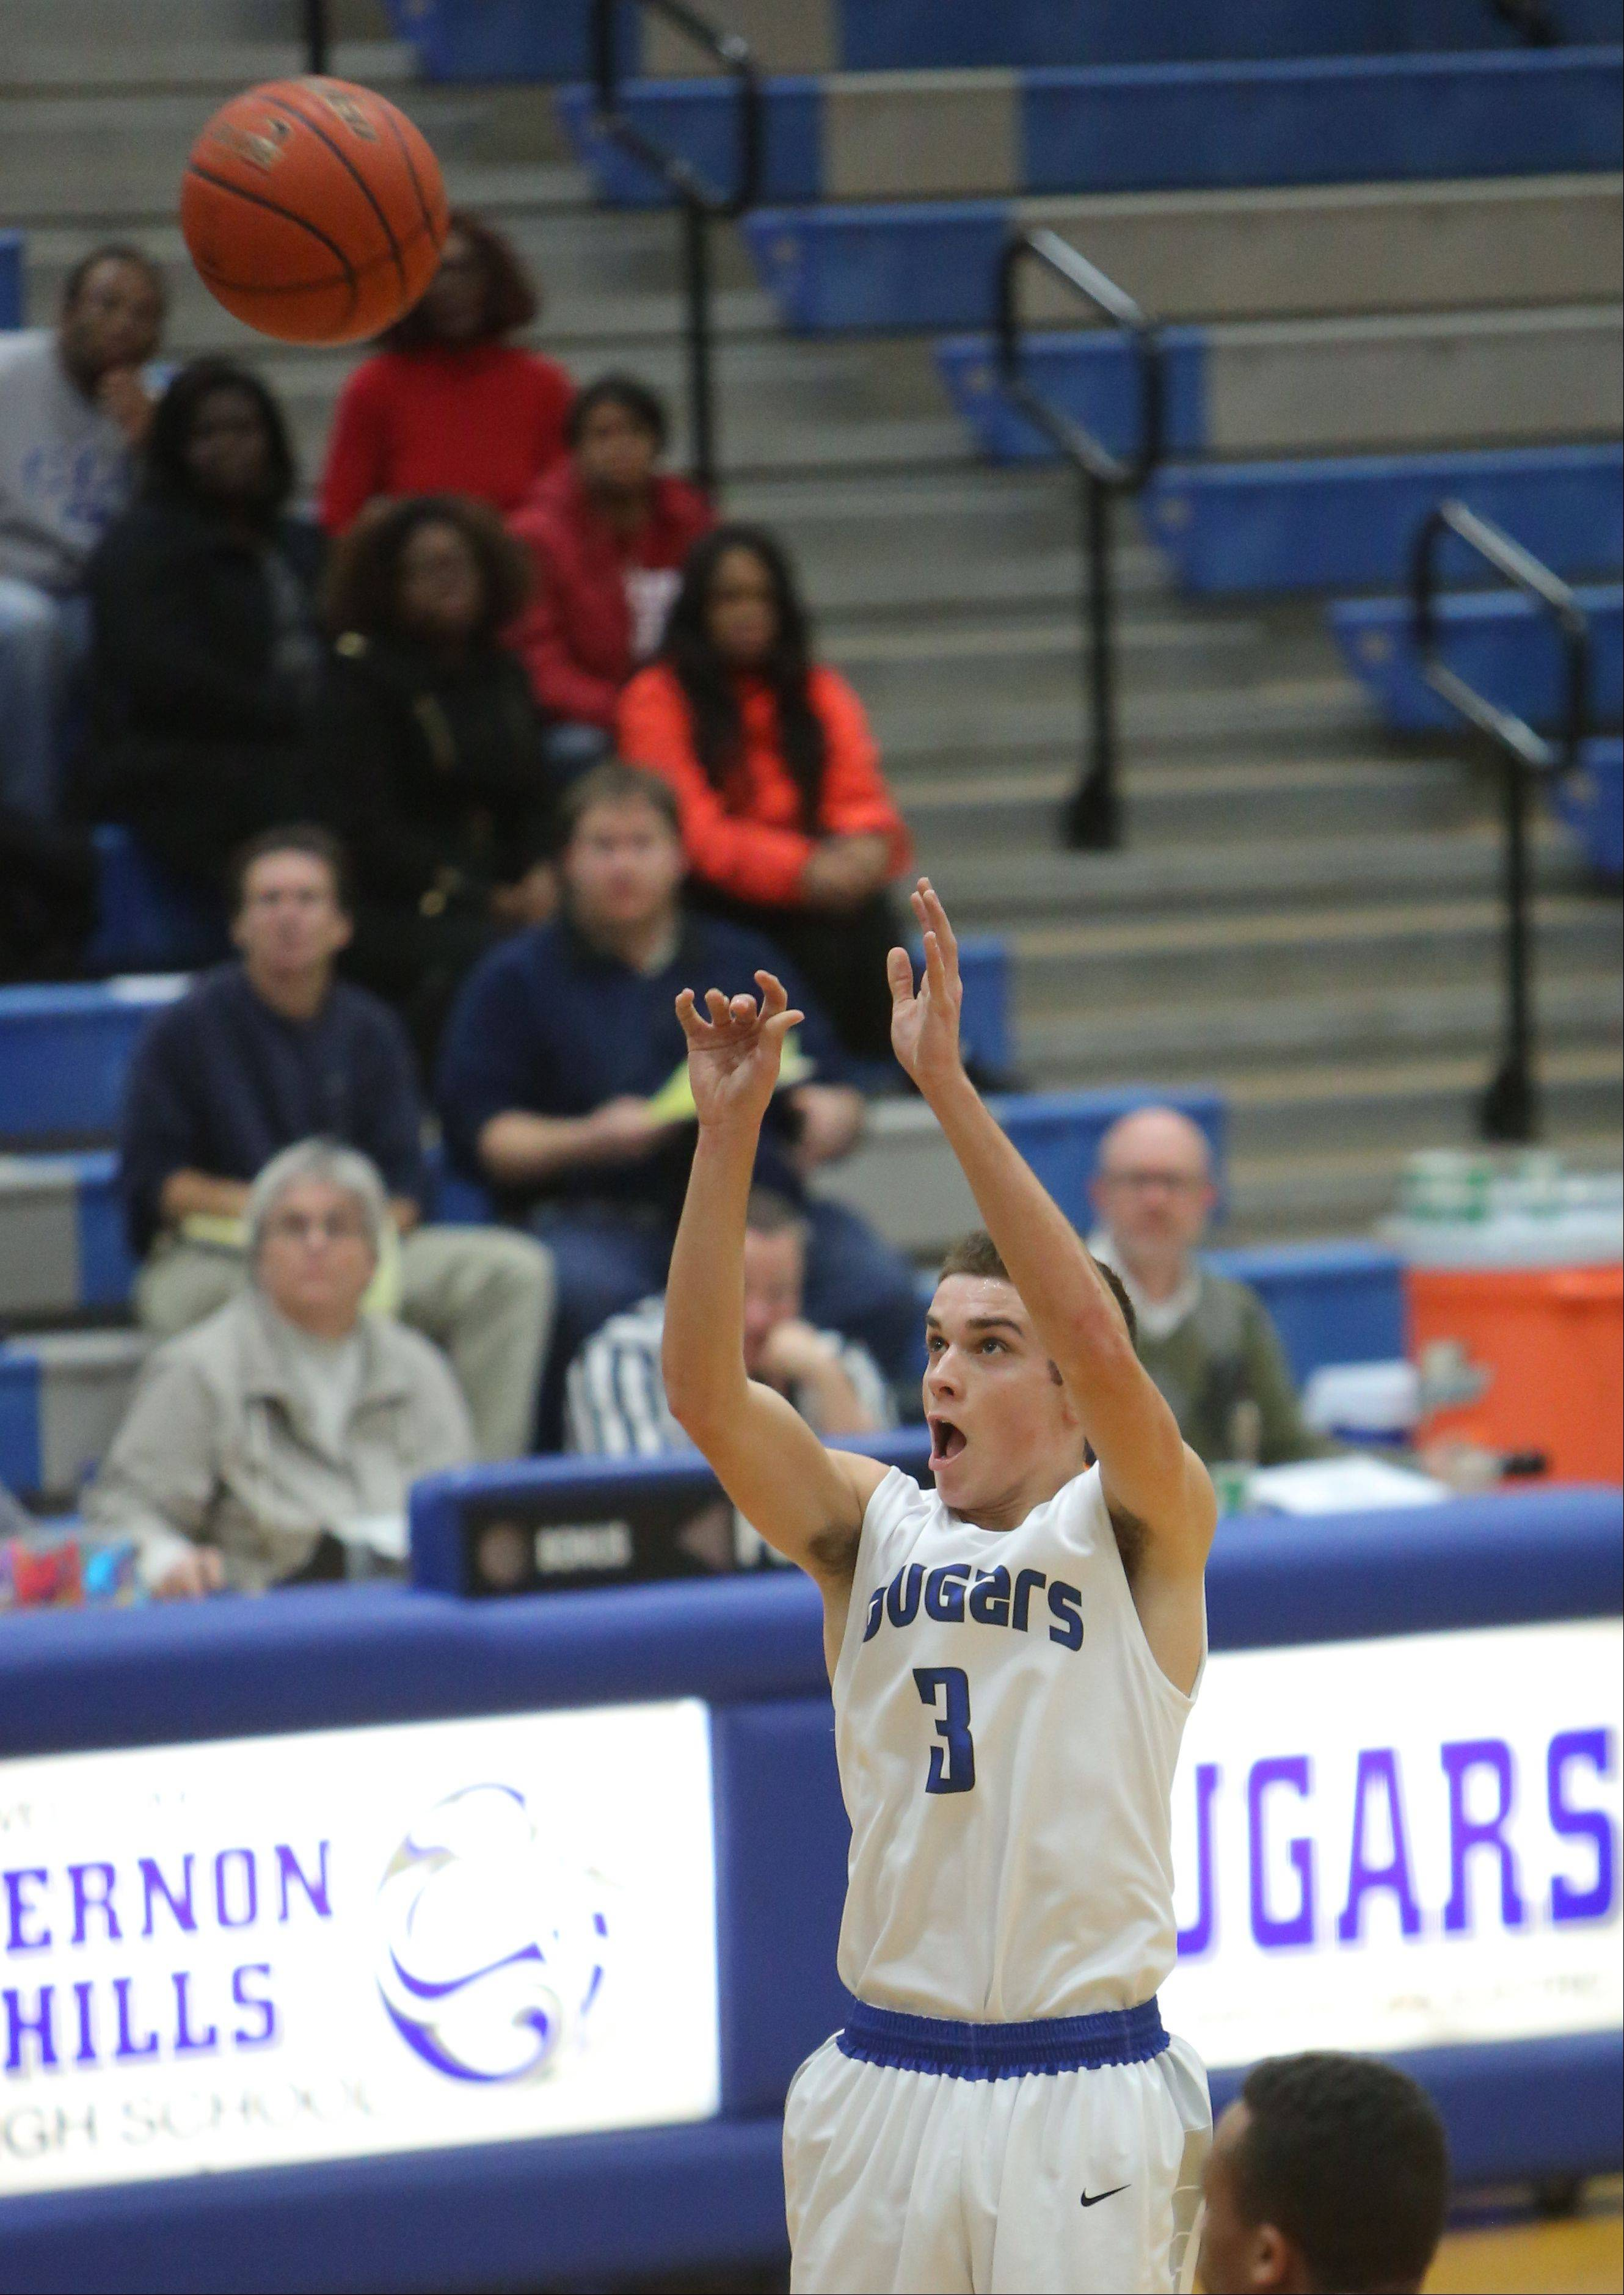 Images from the North Chicago vs. Vernon Hills boys basketball game on Tuesday, Dec. 17.